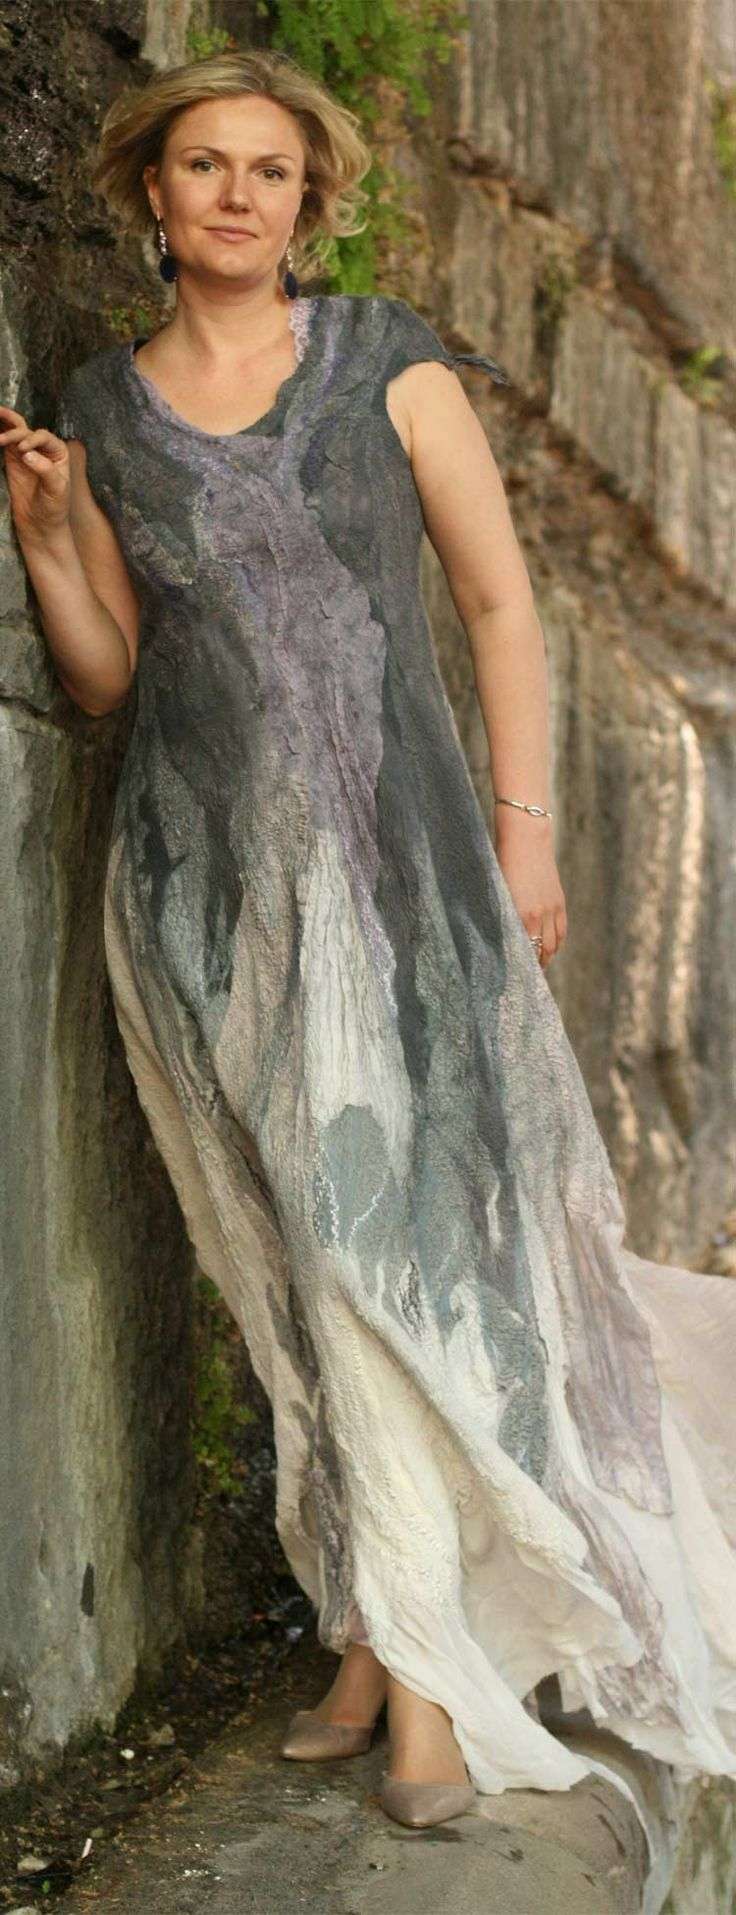 Fashion bridal nuno felted dress by Vera Alexanderova. #felt #nuno #nunofelt #bridal #bridaldress #boho #bohostyle #bohochic